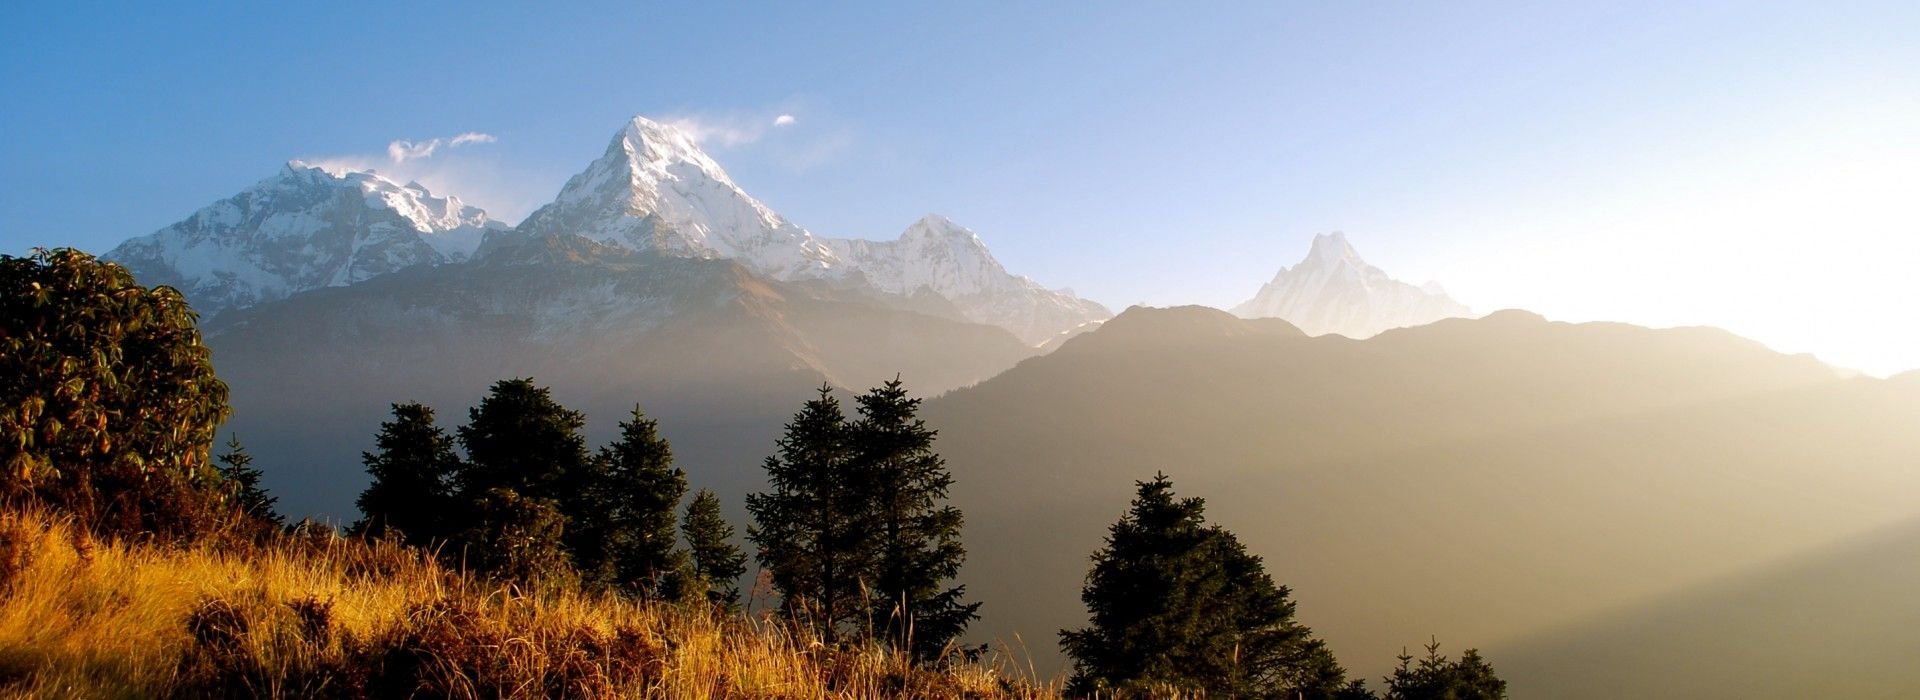 Sightseeing, attractions, culture and history Tours in Gokyo and Everest Base Camp trek